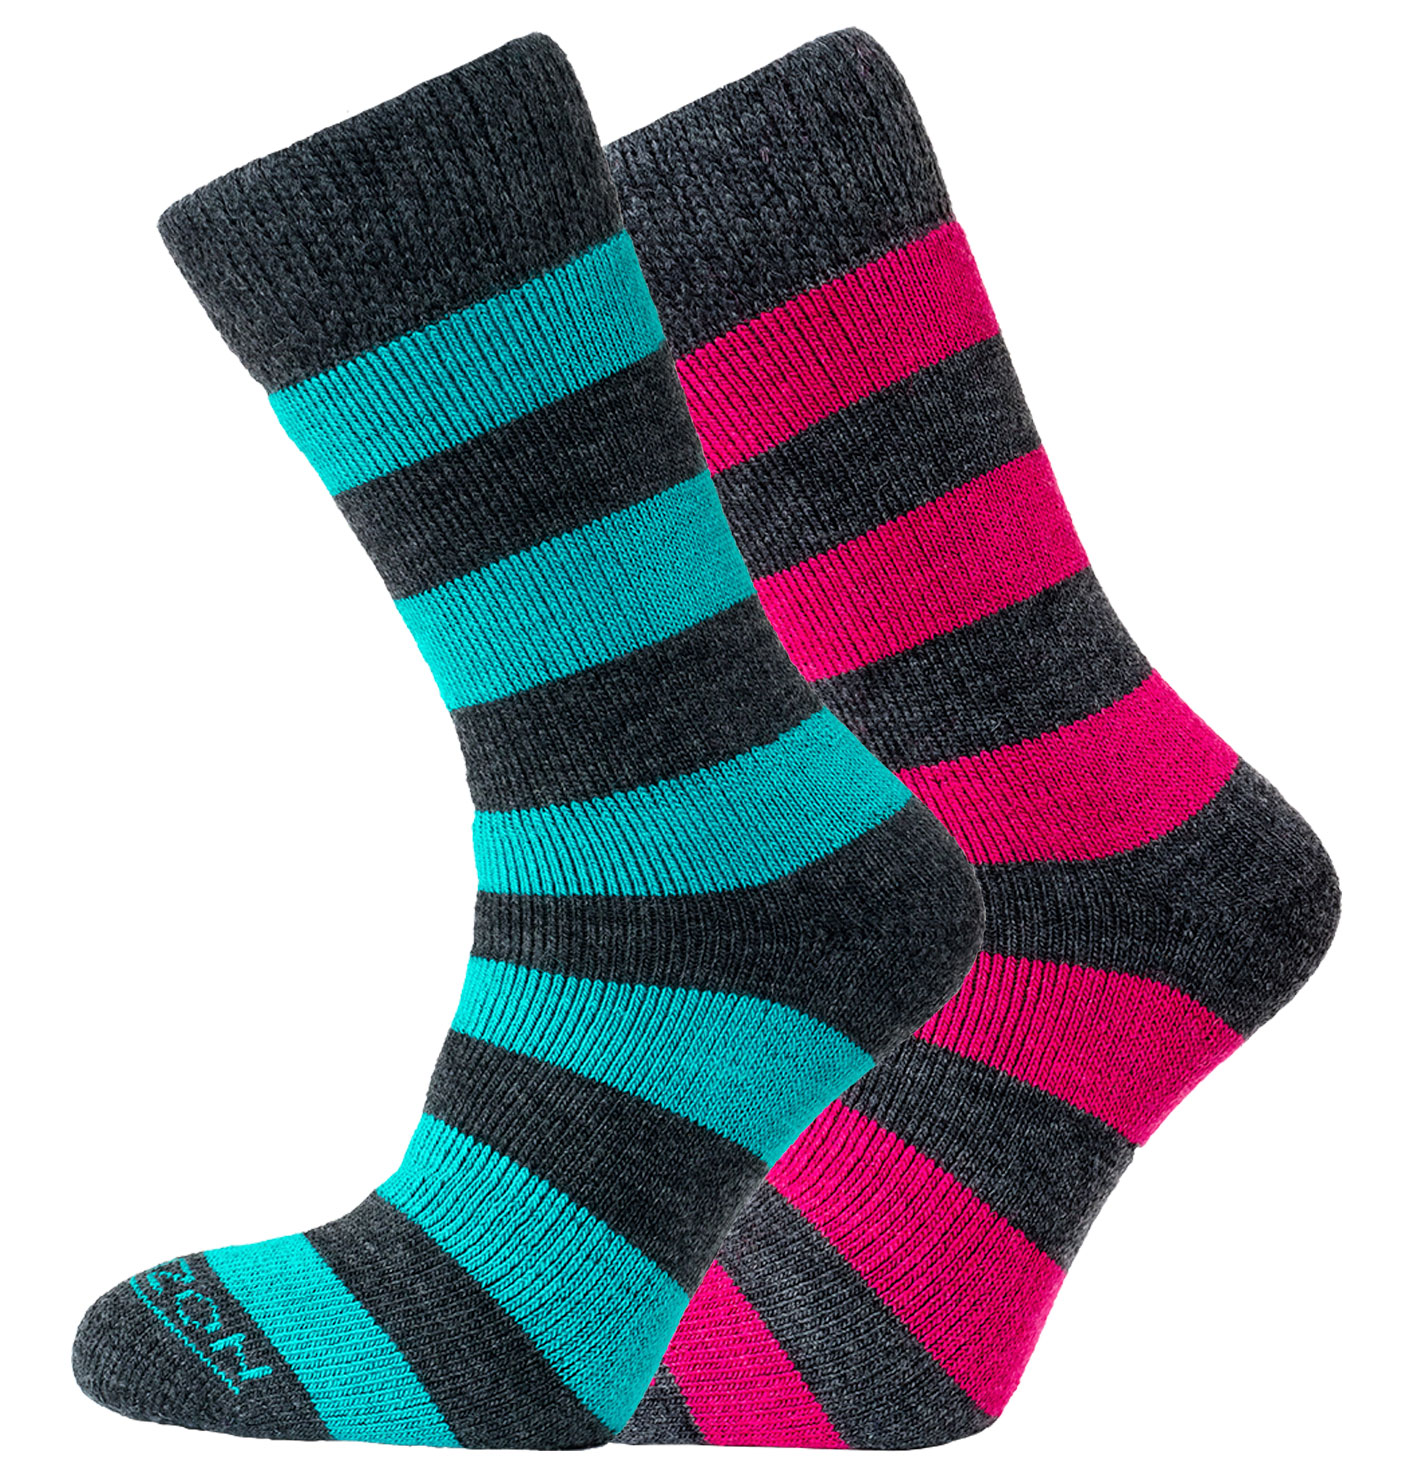 2pk Socks Charcoal with Teal and Cerise